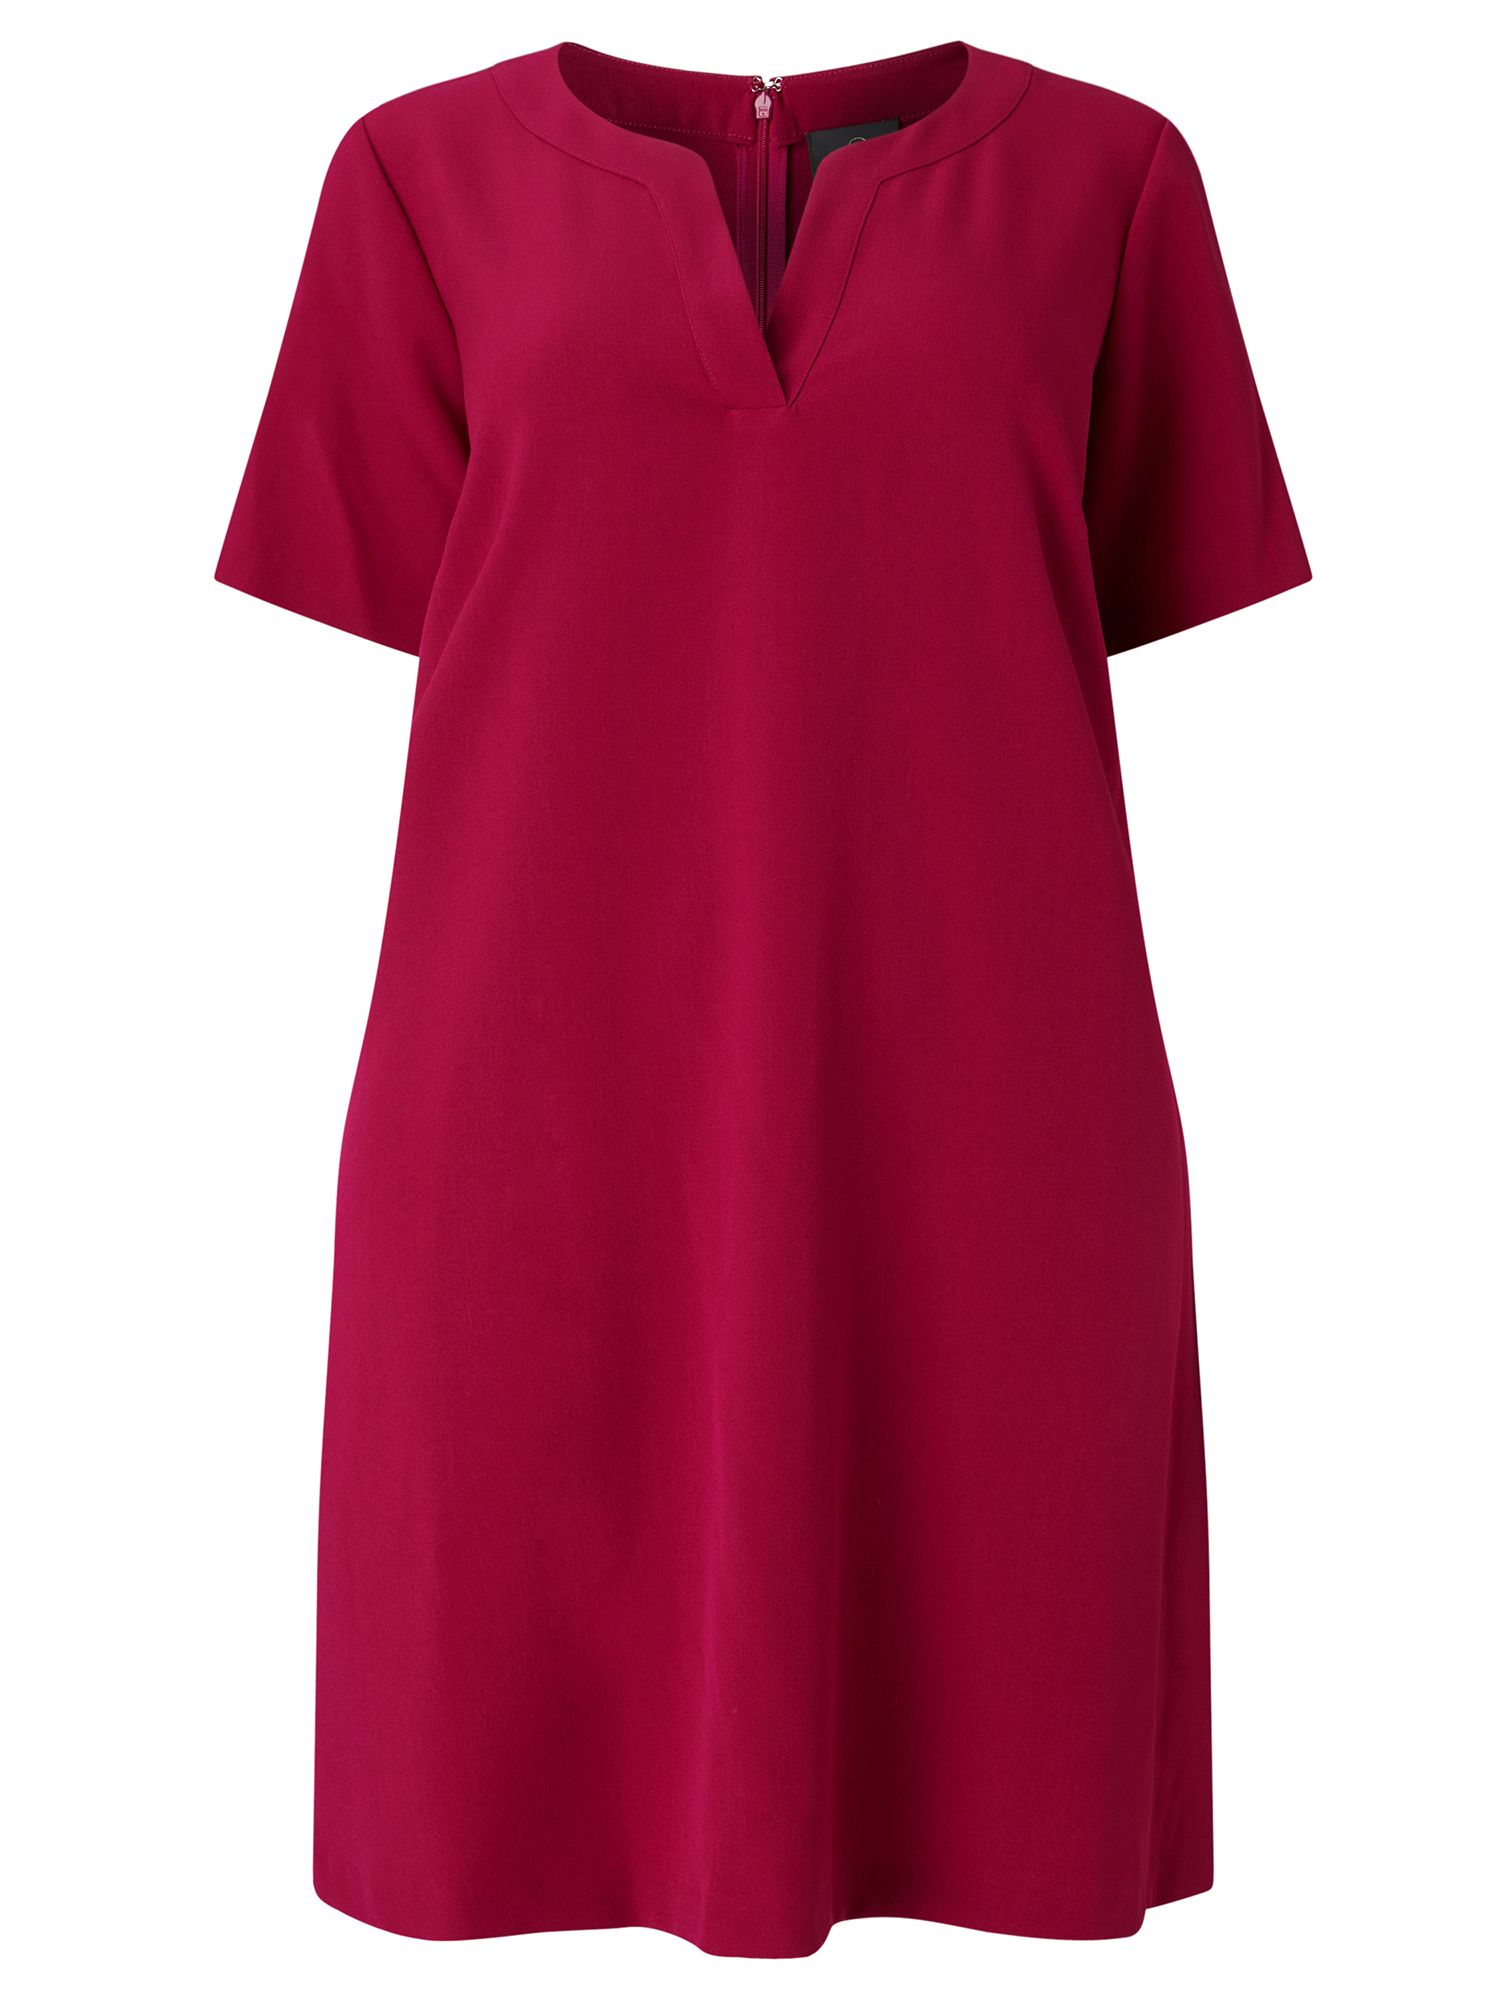 Adrianna Papell Short sleeve trapeze dress, Pink